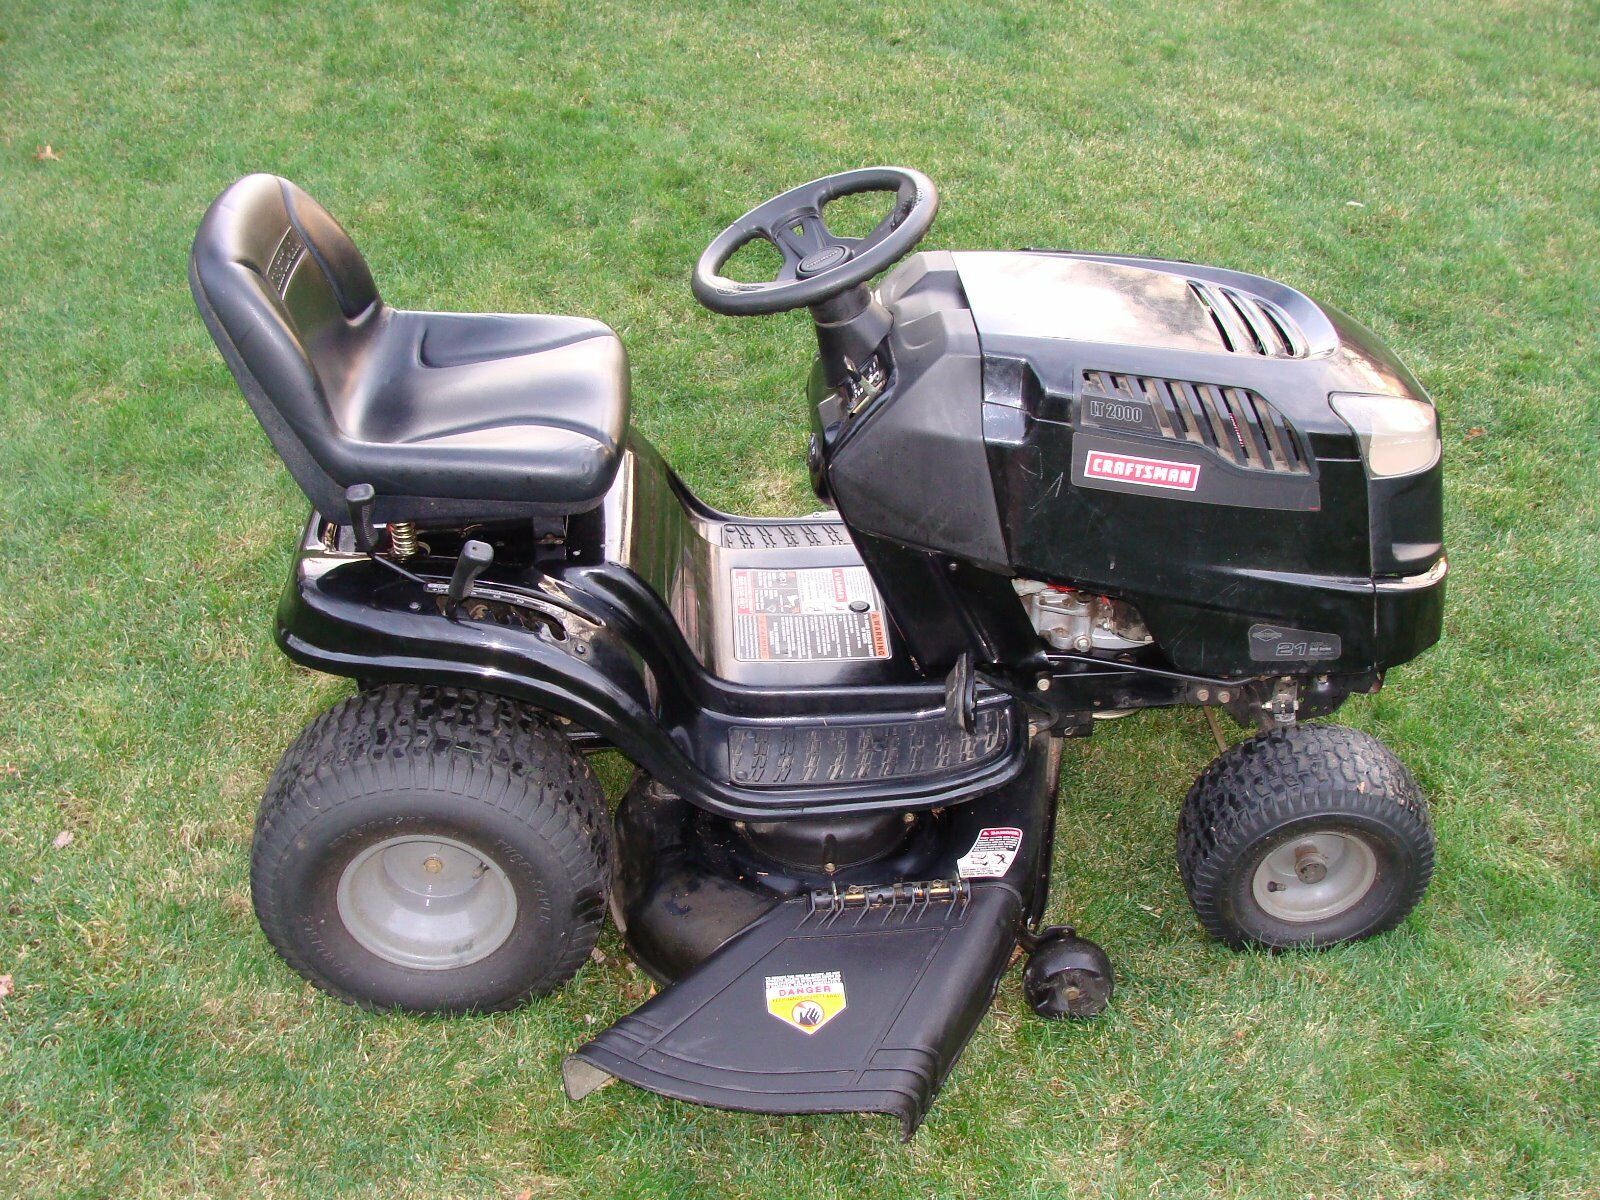 21 HP CRAFTSMAN LAWN TRACTOR RIDING MOWER 46